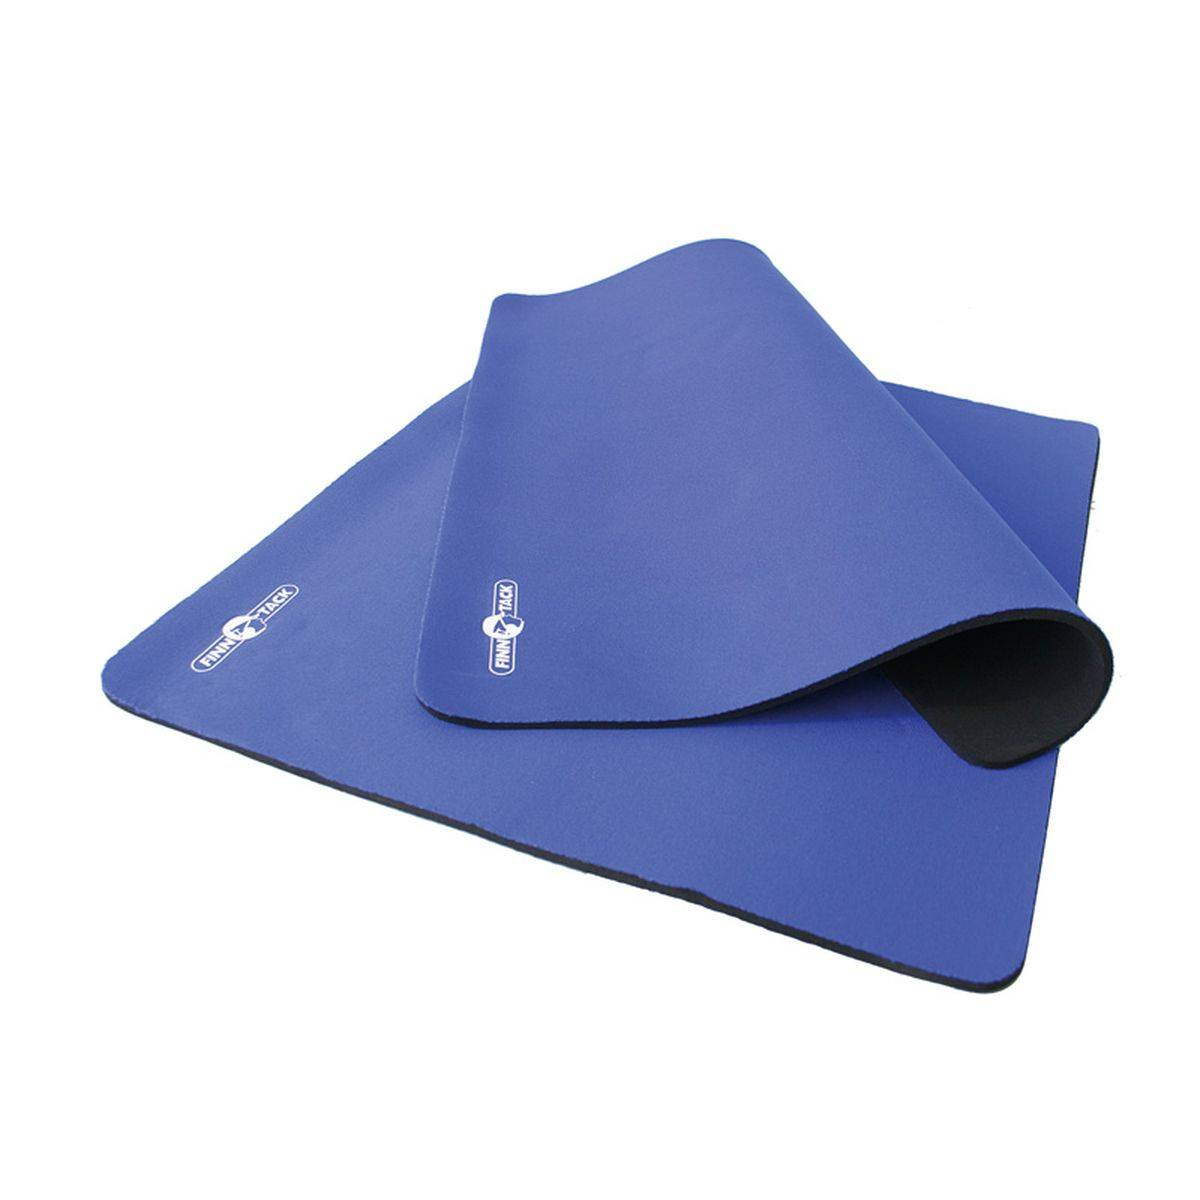 HorZe Neoprene Sheets with Jersey Enforcement